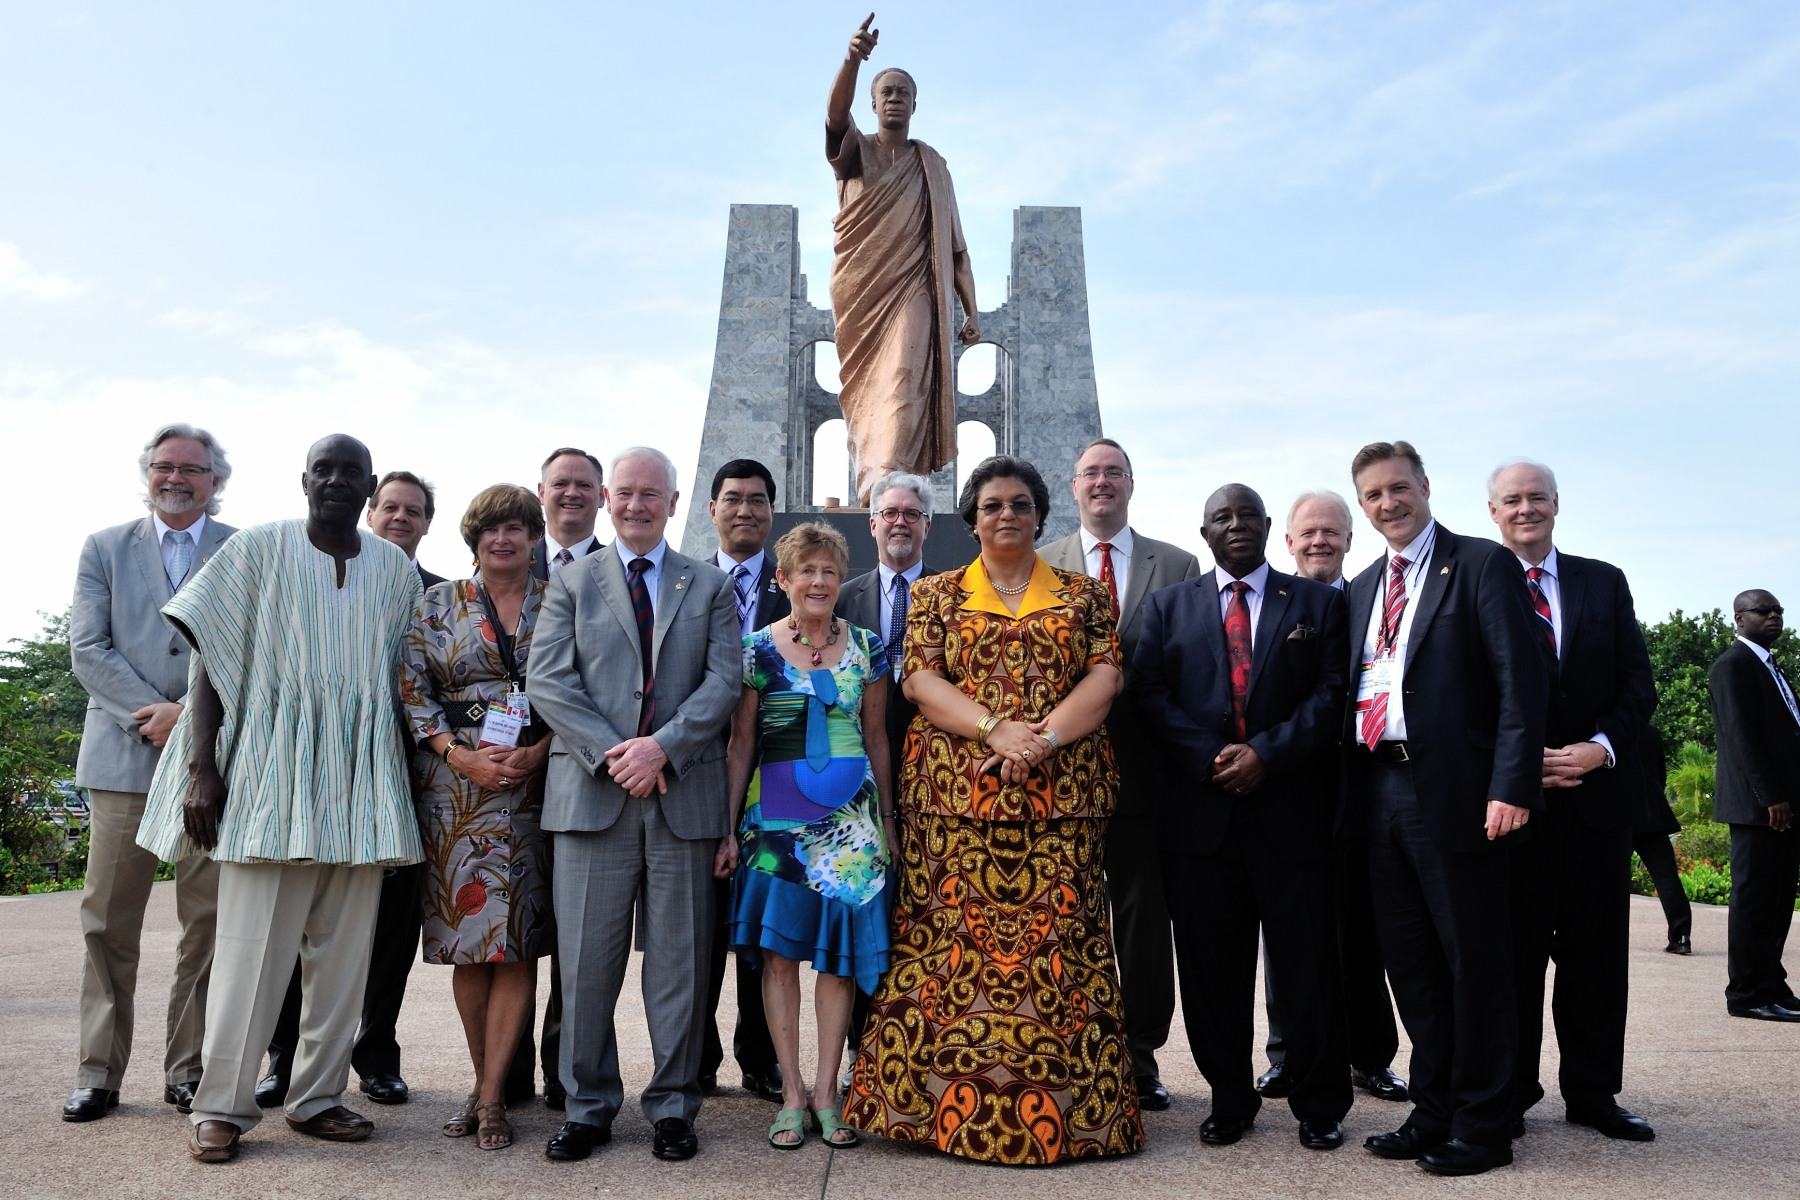 Along with Canadian delegates, Their Excellencies paid homage to the late Dr. Kwame Nkrumah, former president of the Republic of Ghana (1960-1966), who oversaw the nation's independence from British colonial rule on March 6, 1957, and became the first president of the country.